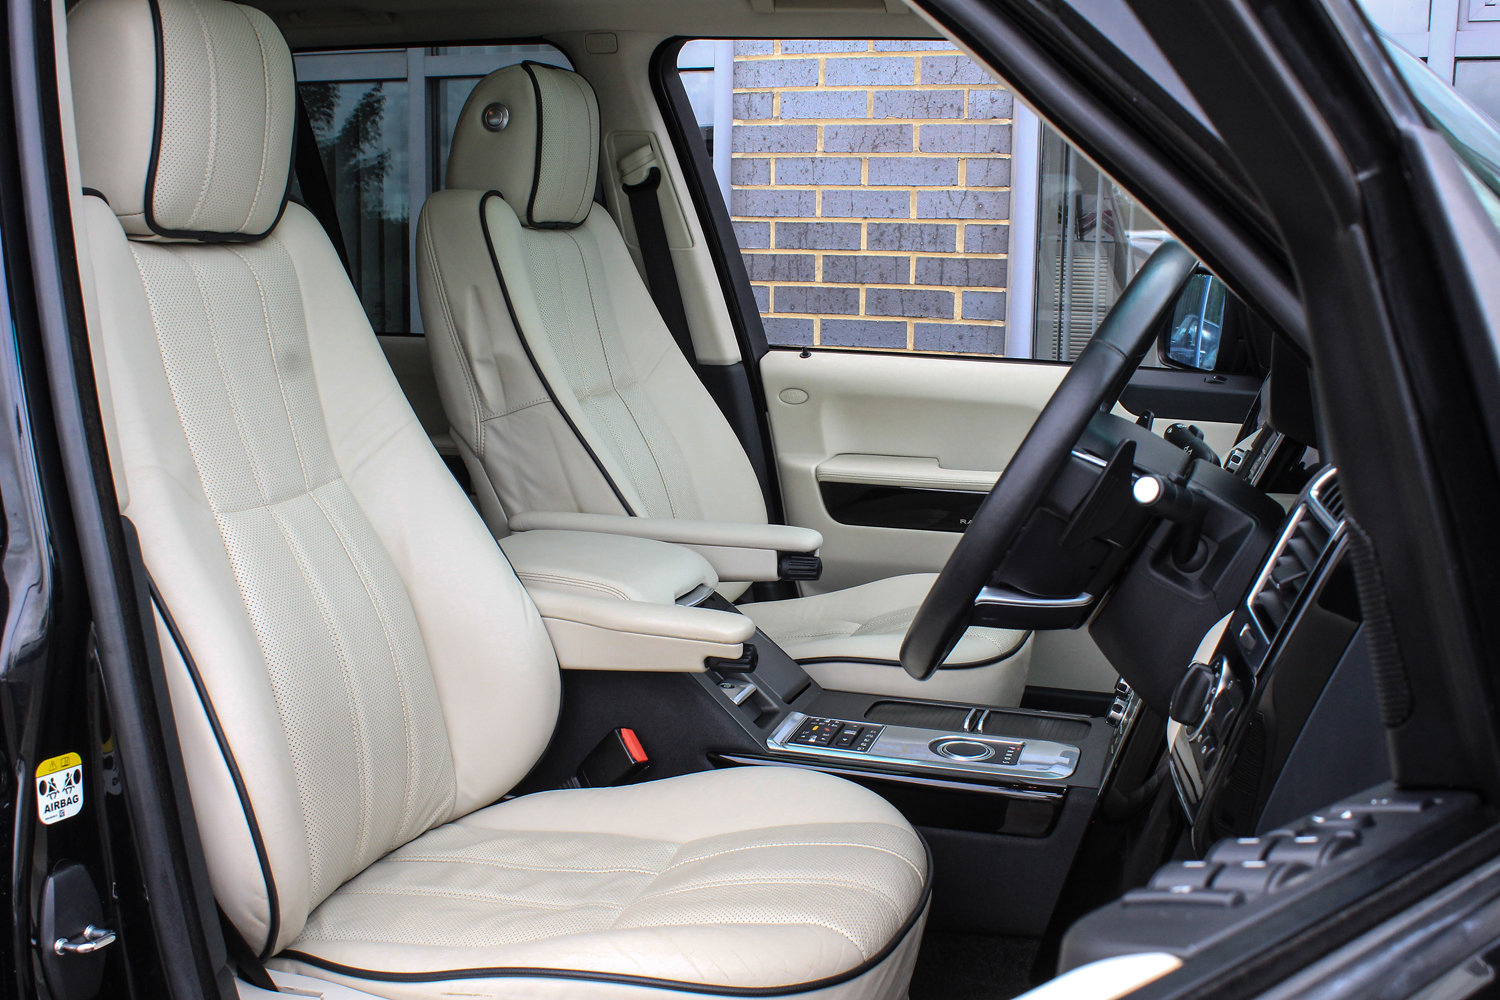 2012 62 RANGE ROVER 4.4TDV8 WESTERMINSTER AUTO  For Sale (picture 4 of 6)